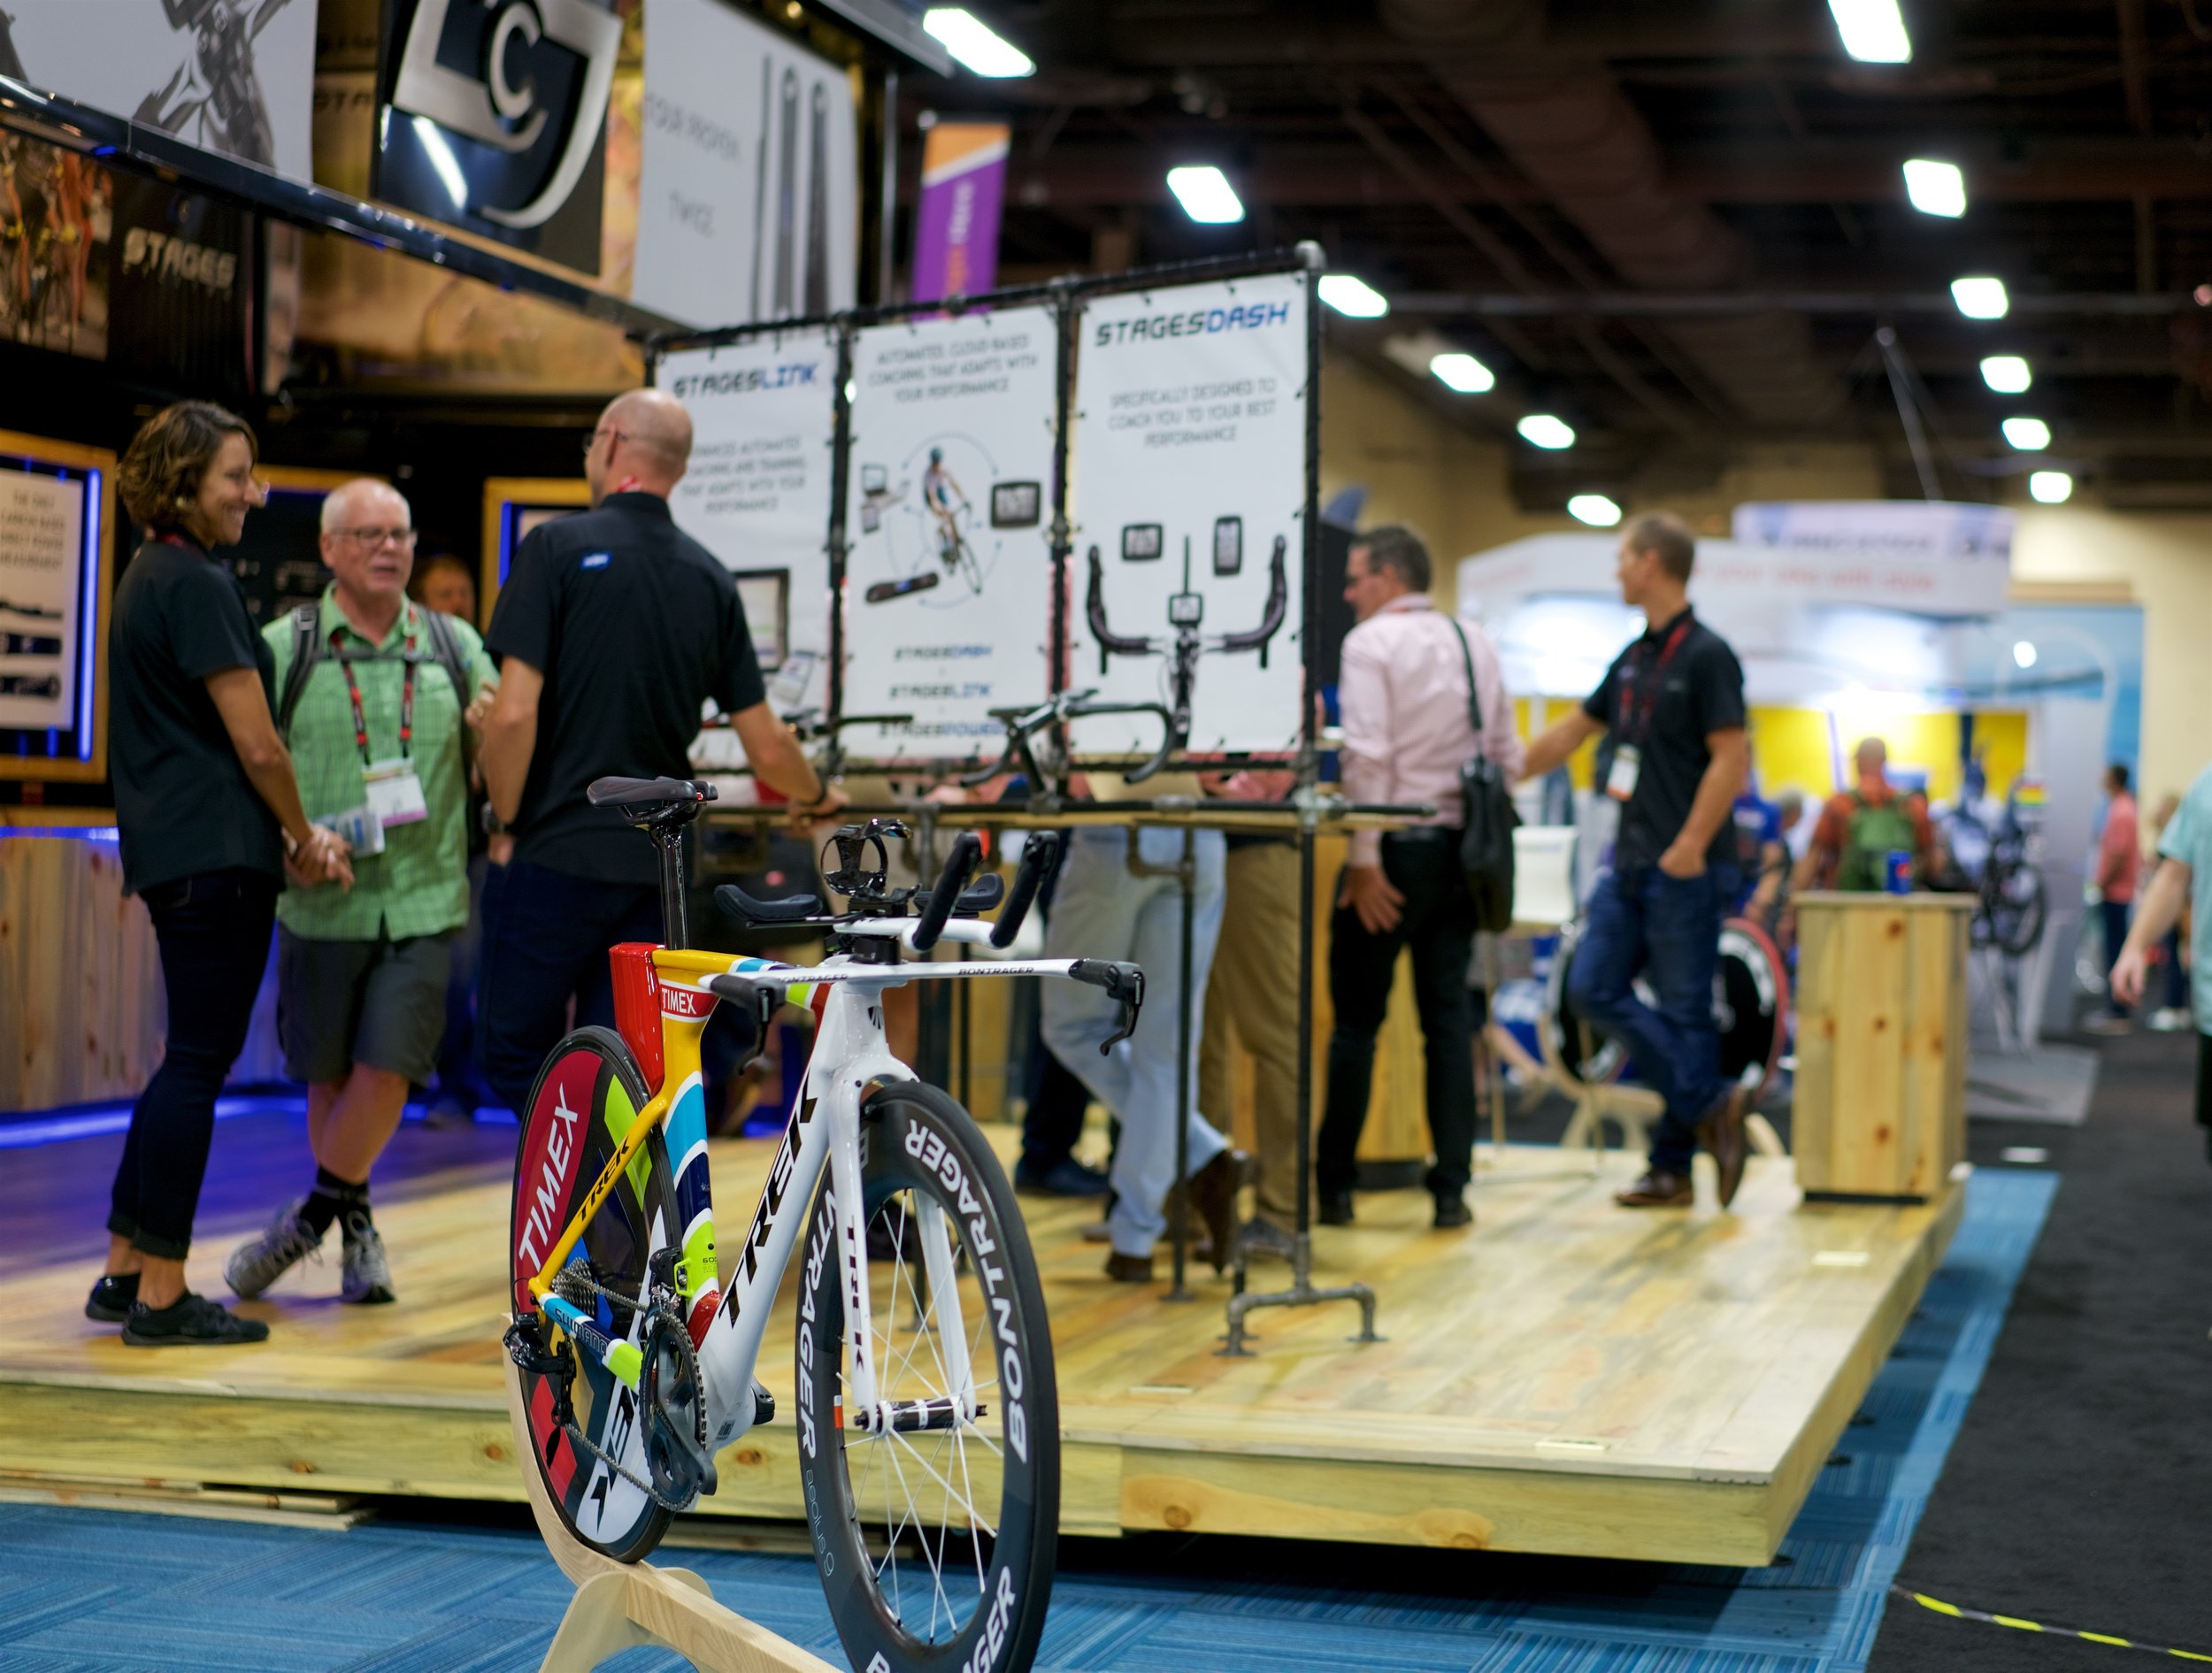 Stages gave Trek and Timex a little love at the show